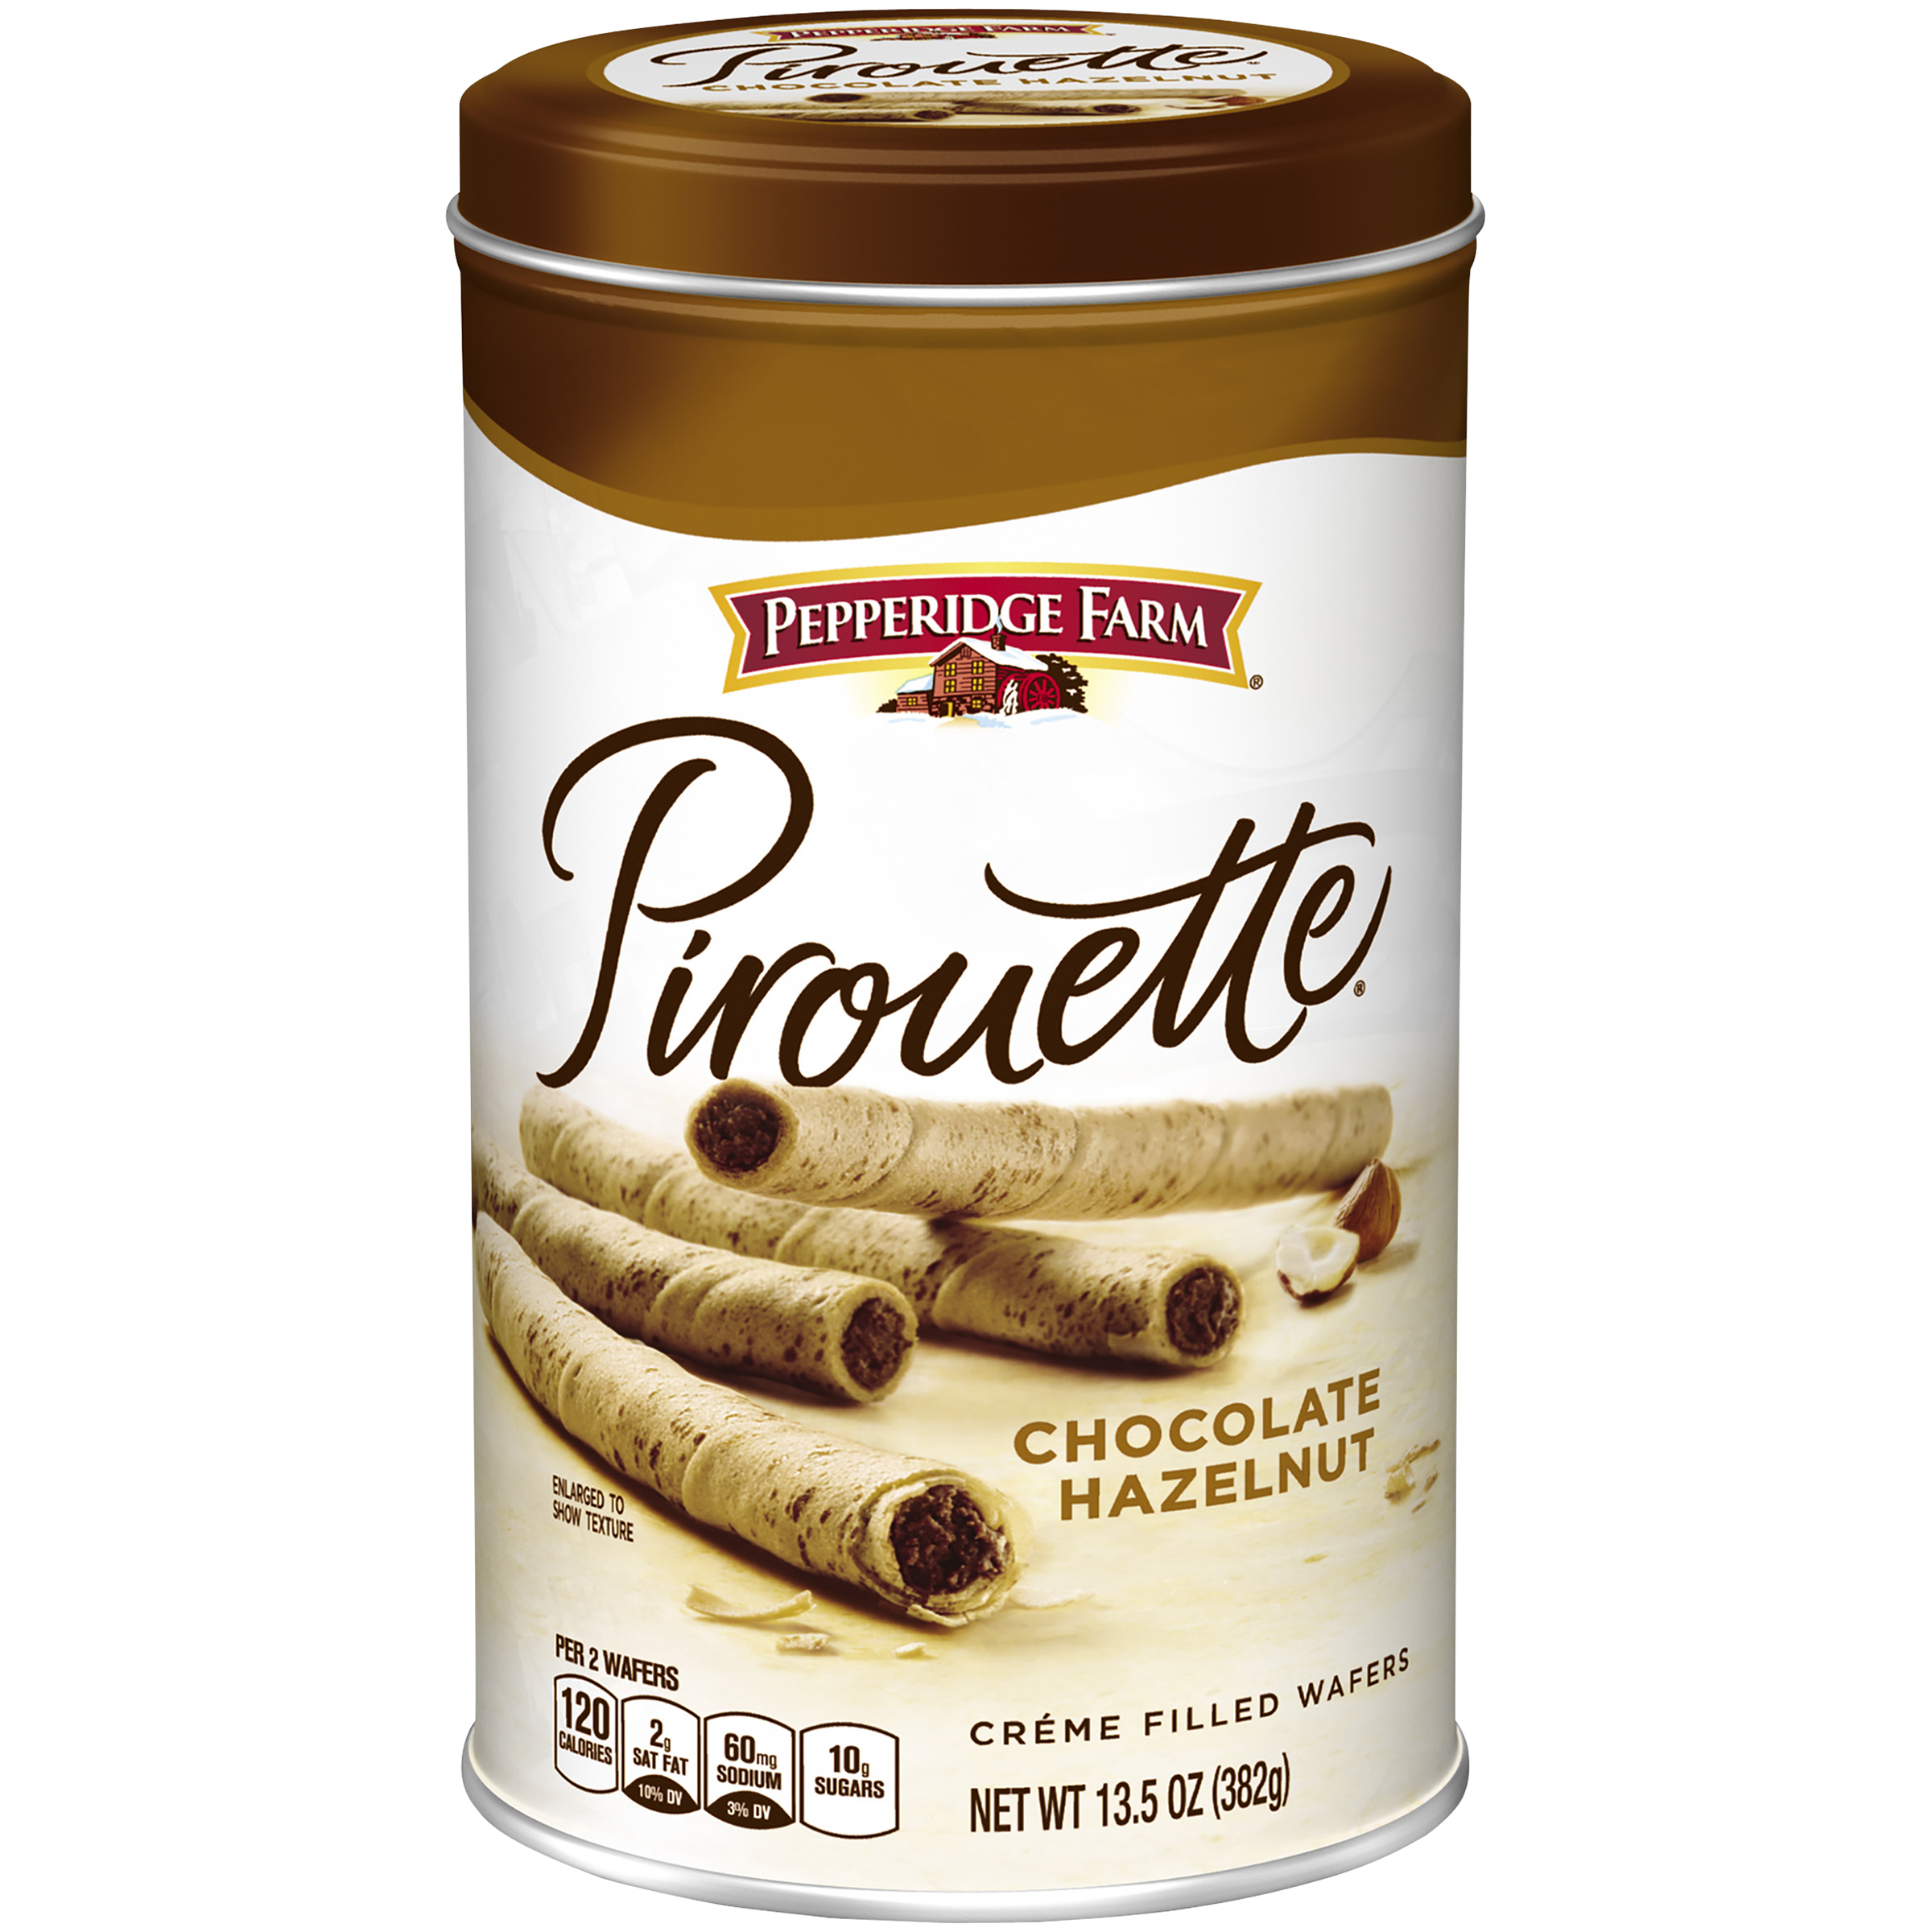 Pepperidge Farm® Pirouette® Chocolate Hazelnut Créme Filled Wafers 13.5 oz. Canister